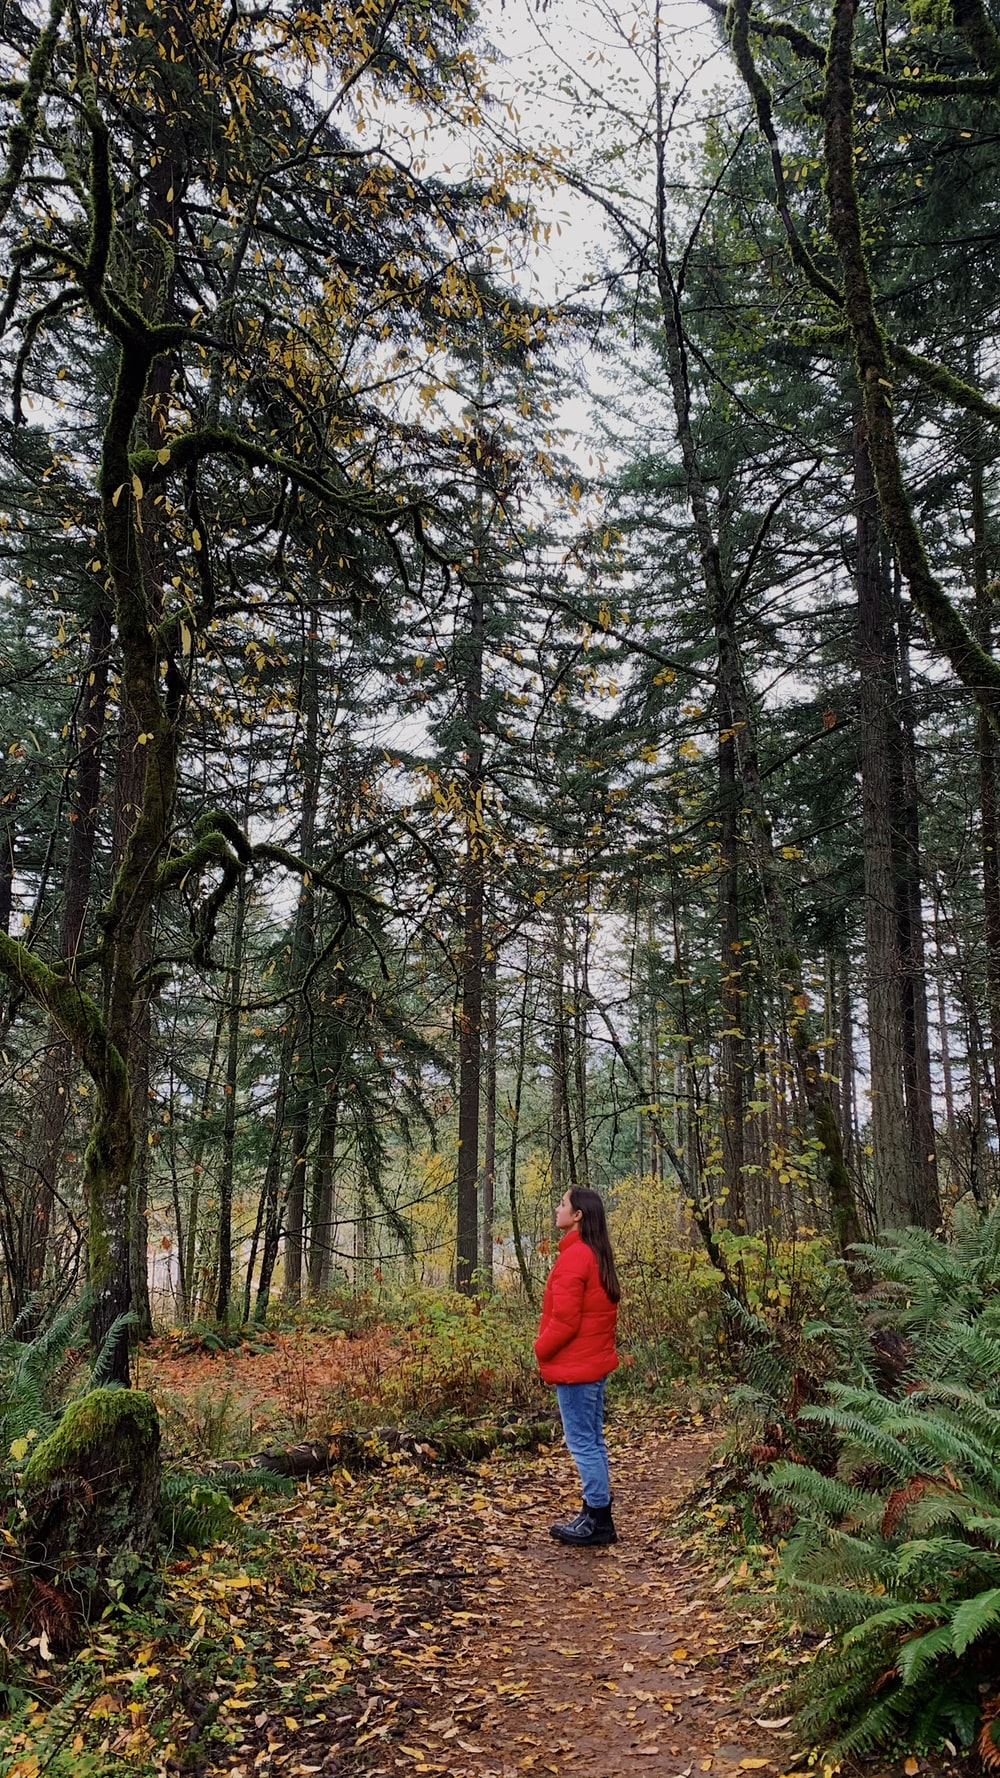 person in red jacket standing in the woods during daytime